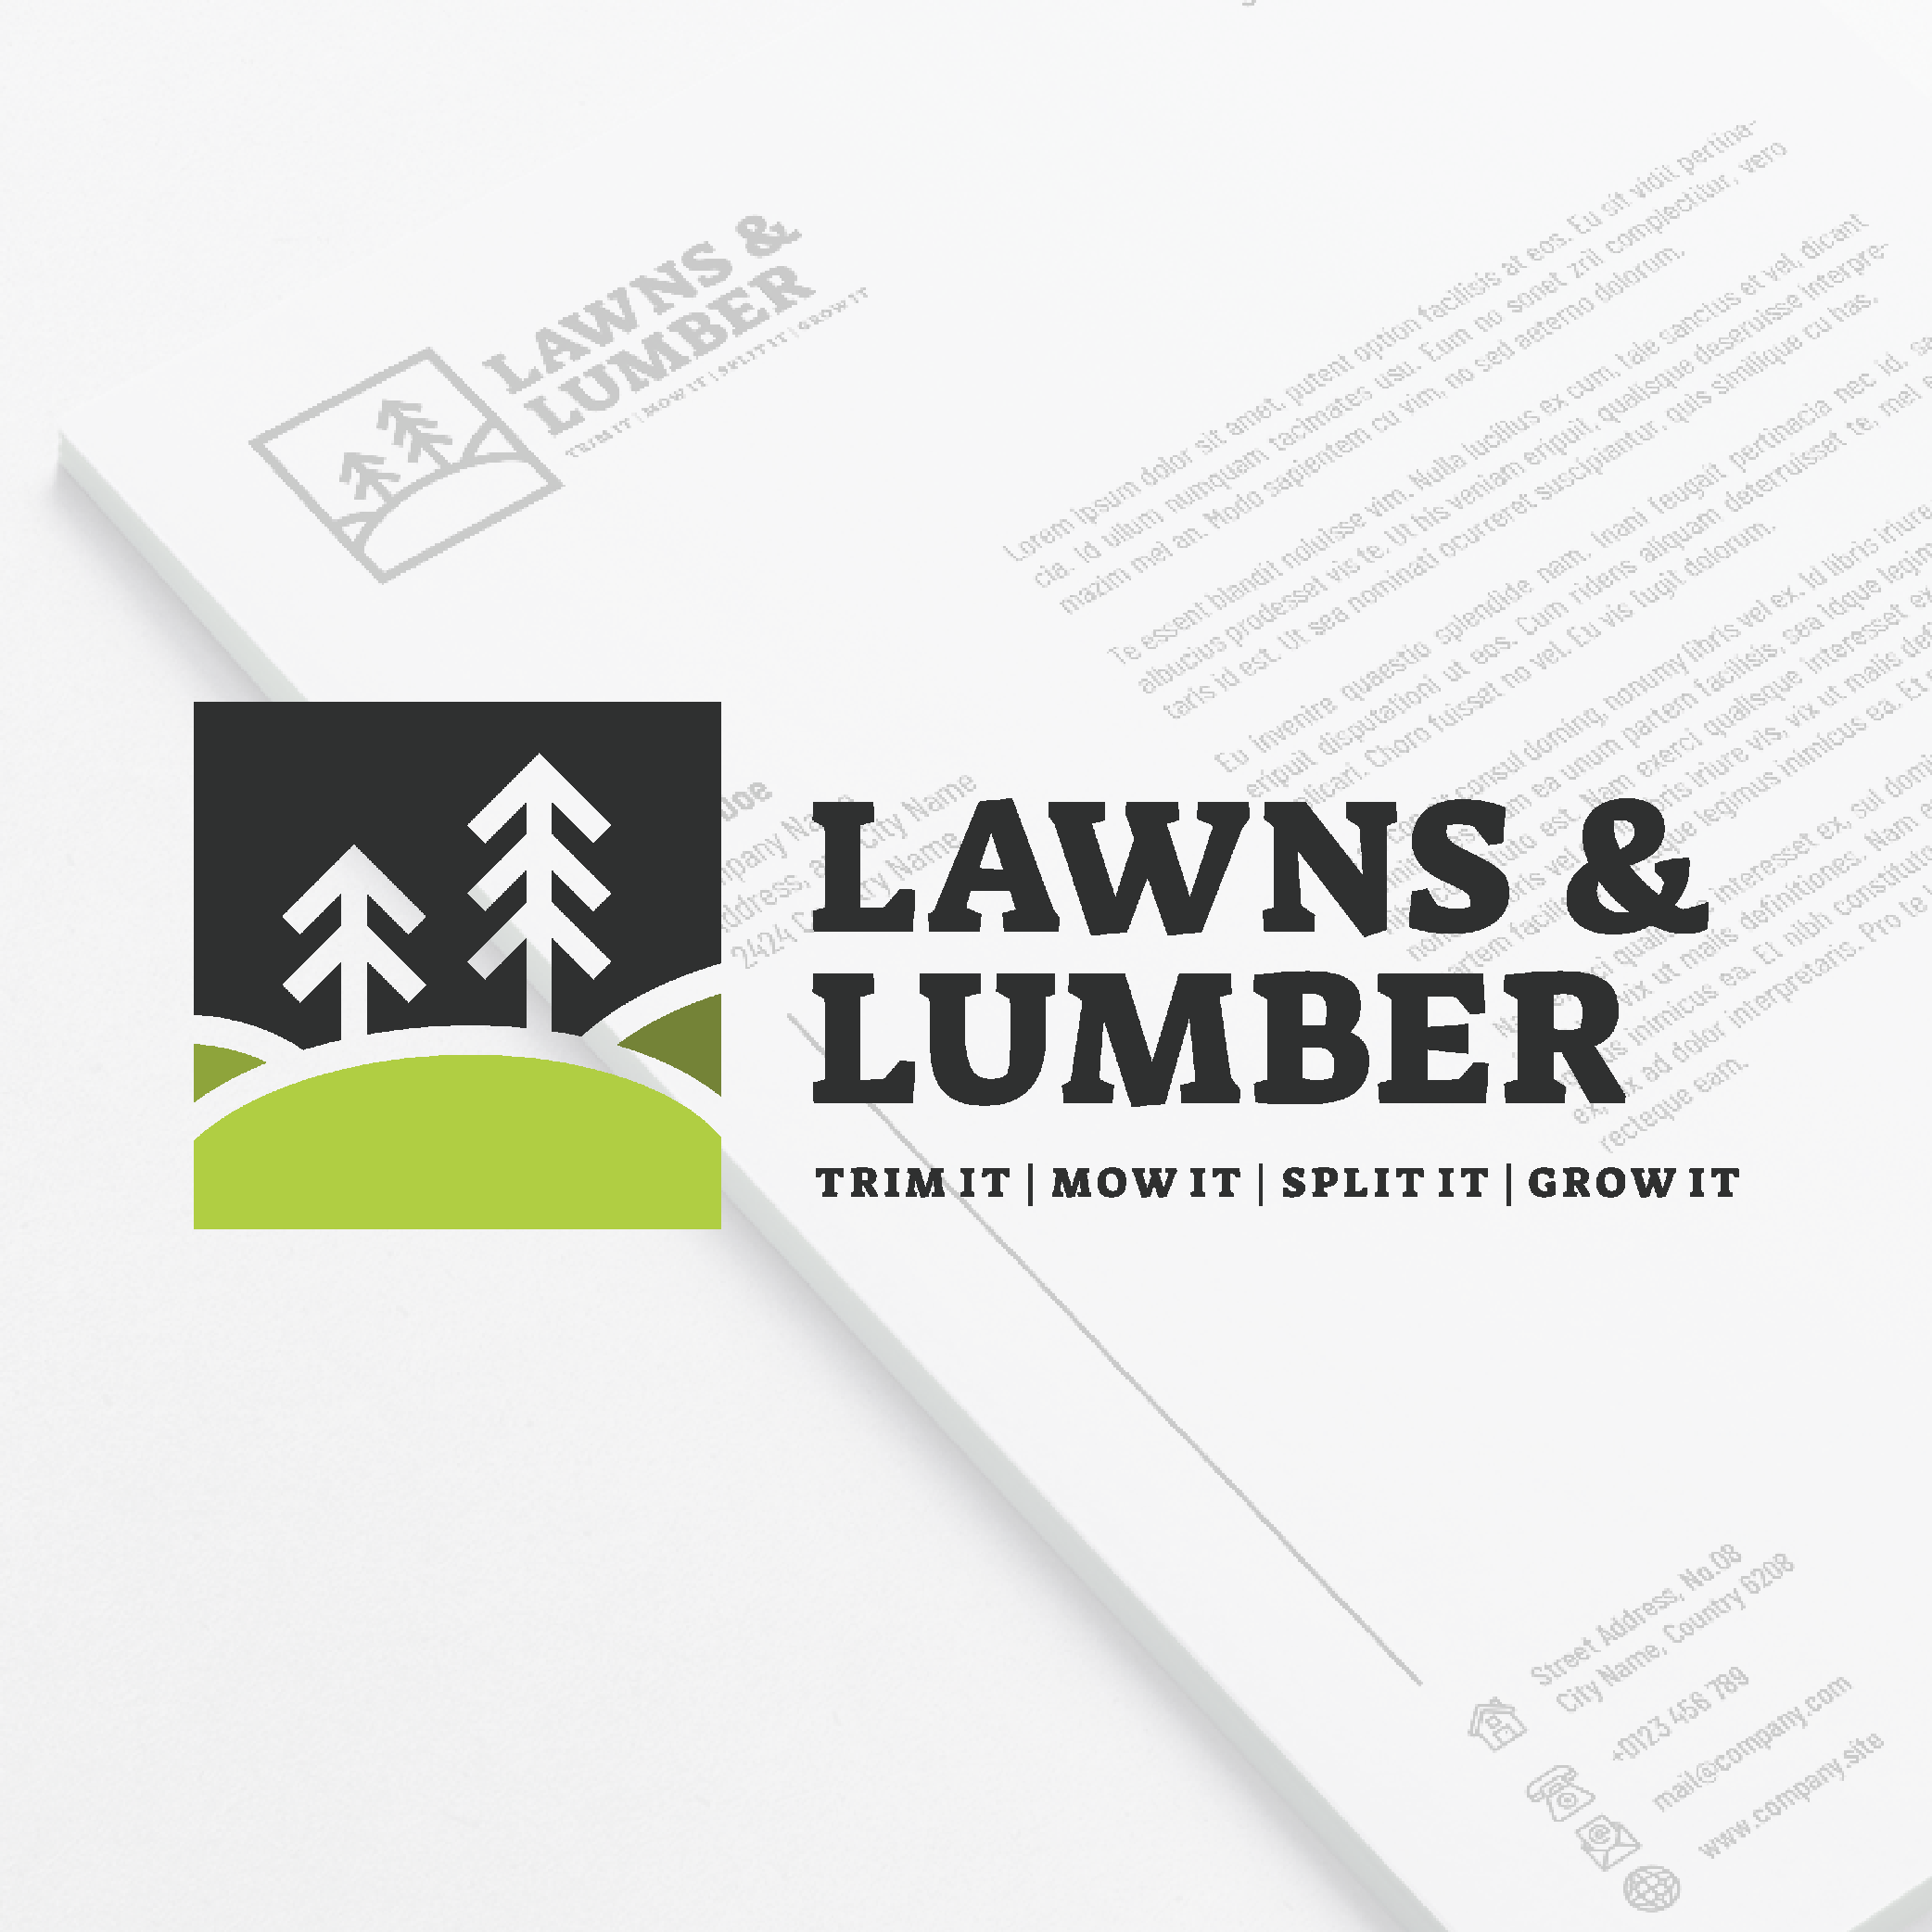 Lawns & Lumber